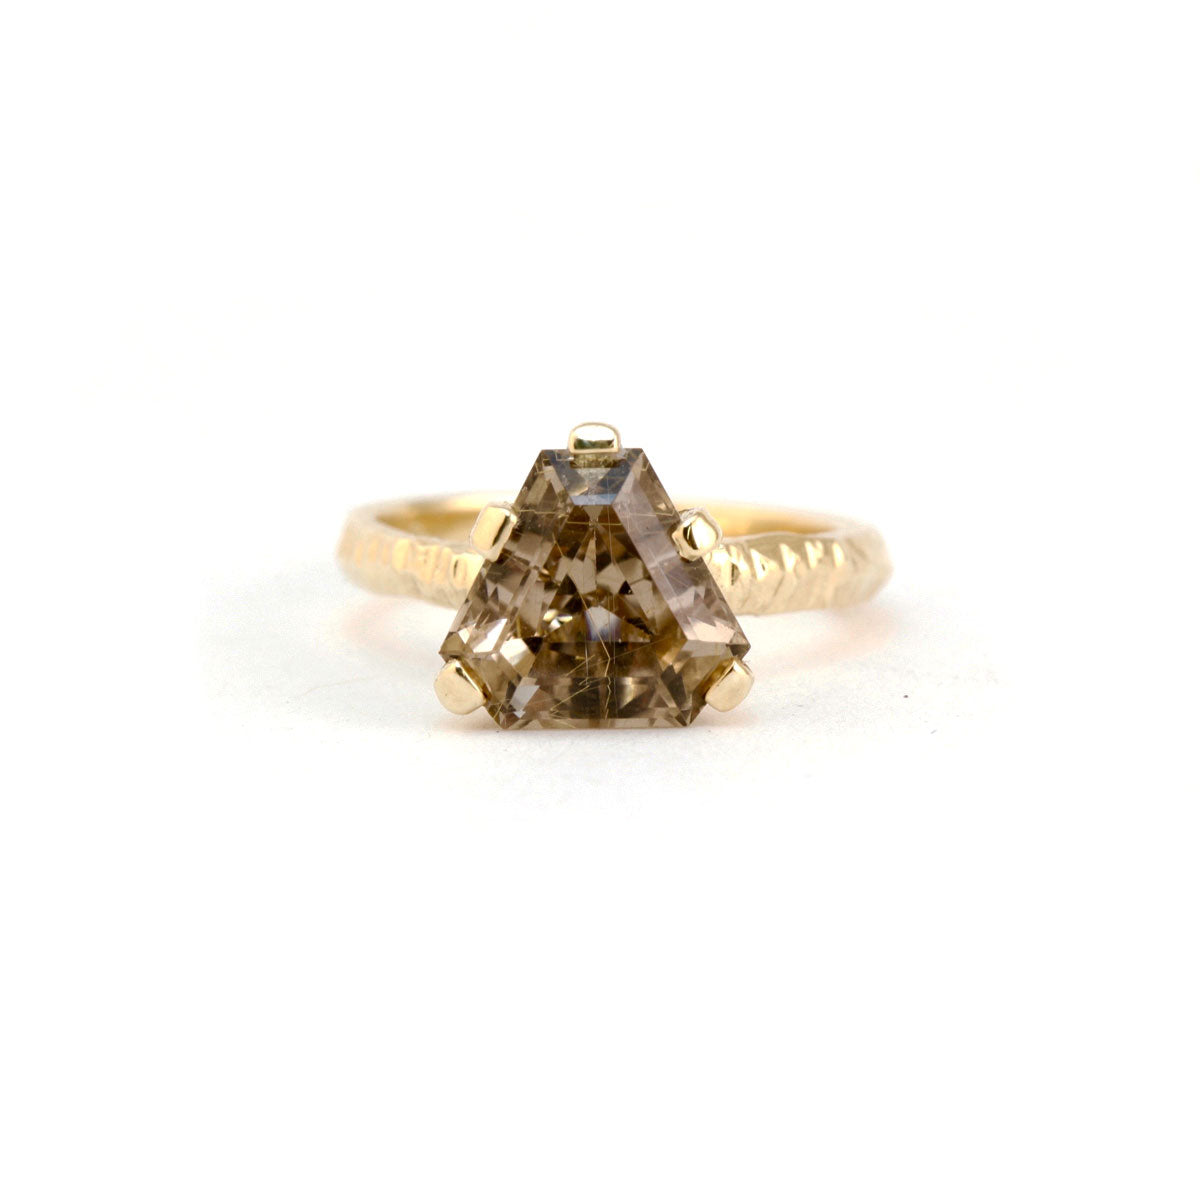 9ct gold textured ring with trilliant cut rootilated quartz engagement ring Custom Bespoke Handmade jewellery